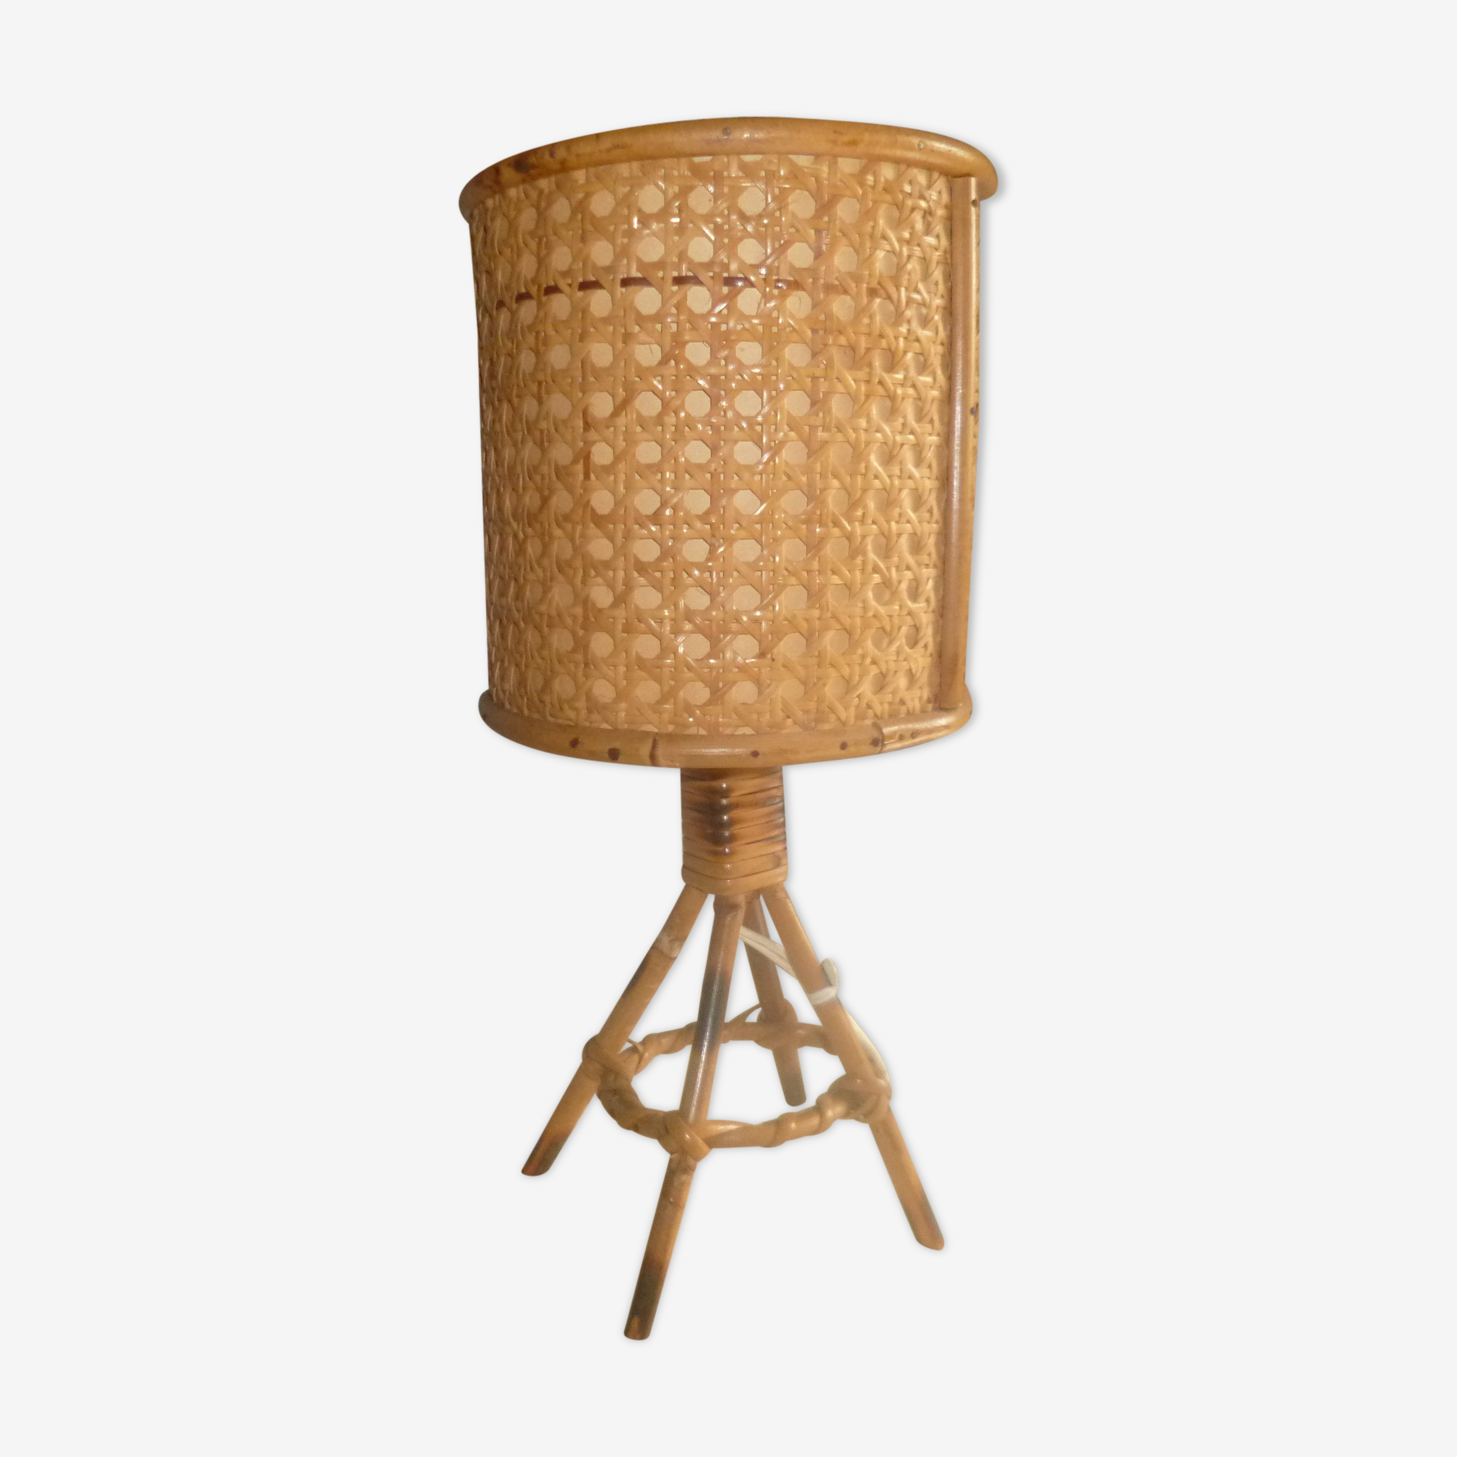 Wicker rattan bedside lamp 1960